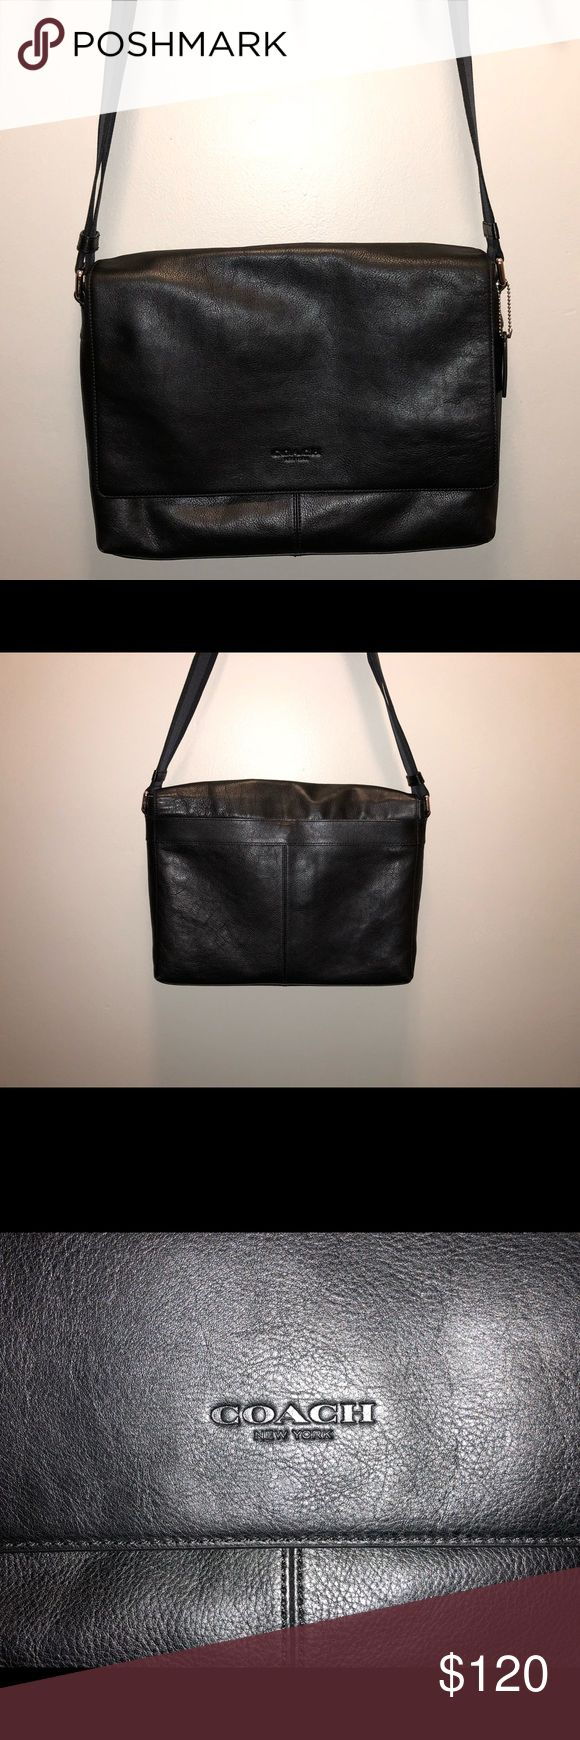 Coach leather messenger bag Very lightly used, in great condition. Black leather with adjustable nylon strap and magnetic closure flap front. Zippered pockets inside and magnetic closure pocket on the back. Coach Bags Laptop Bags